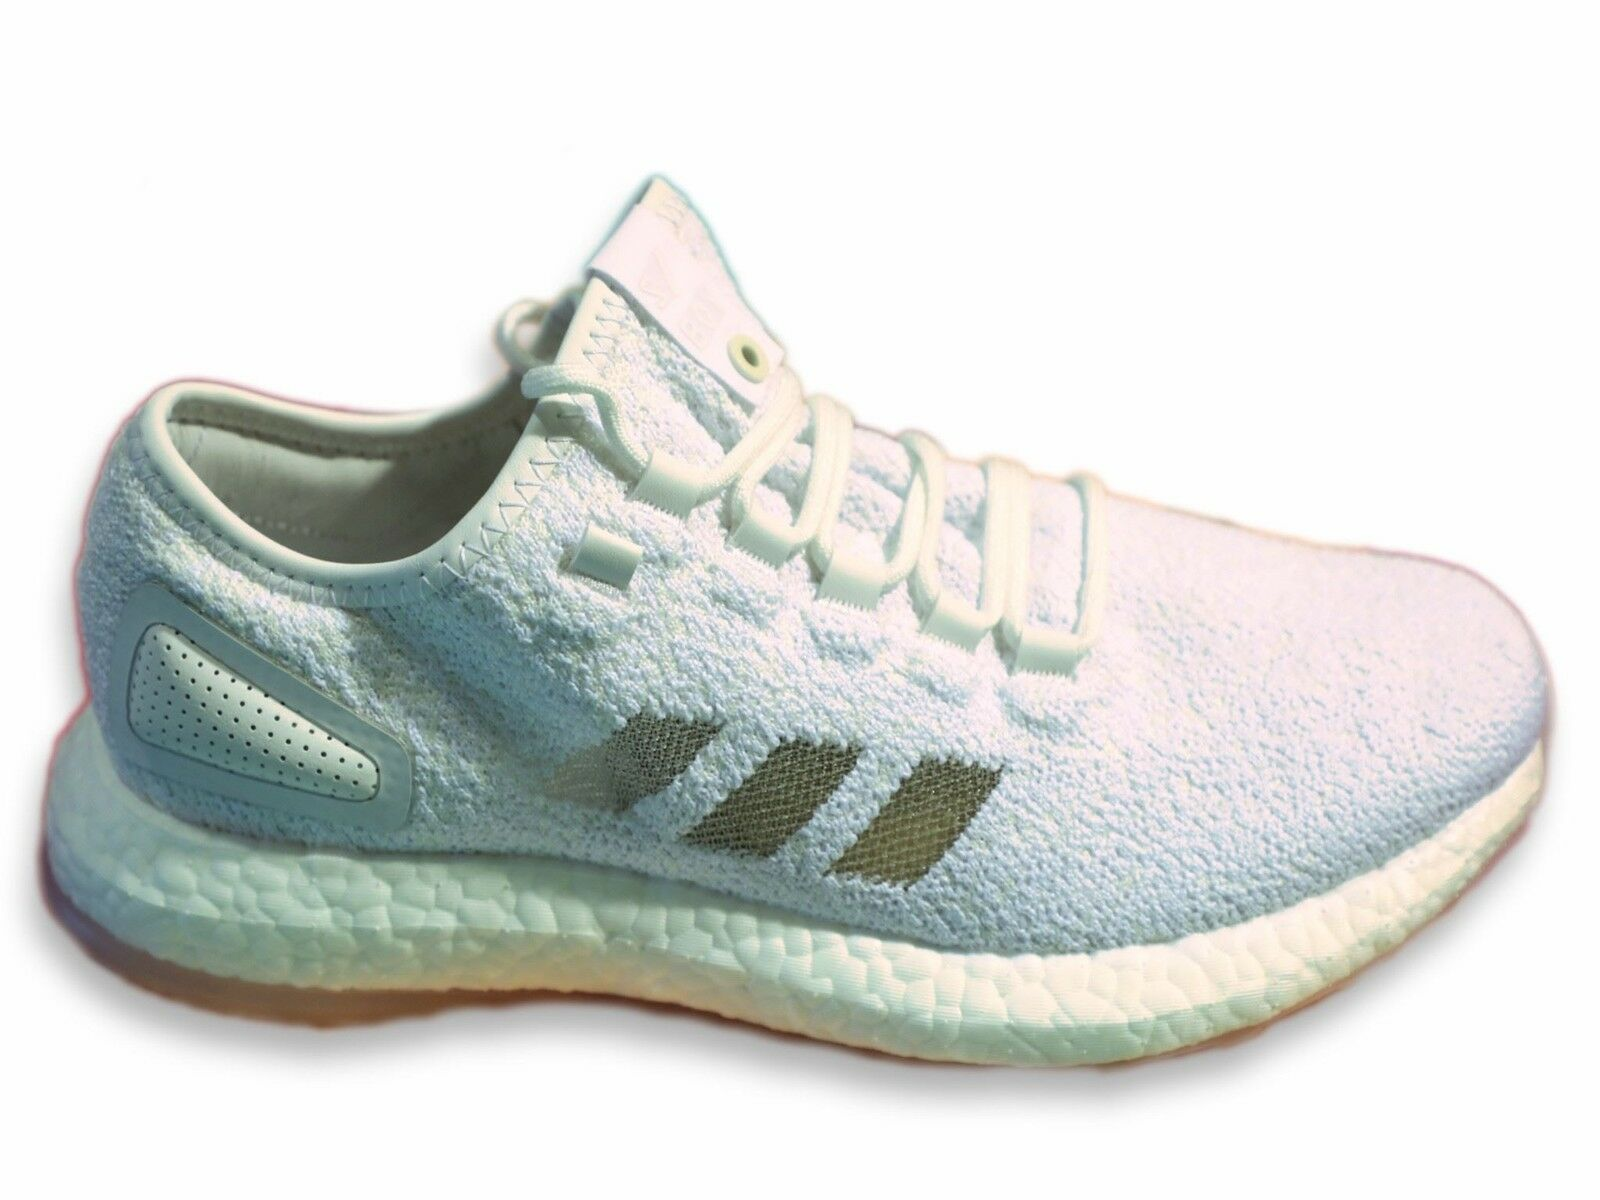 reputable site 6ce1f c2a93 2017 Sneakerboy x WISH ATL x adidas pure boost Glow in Dark Size 10